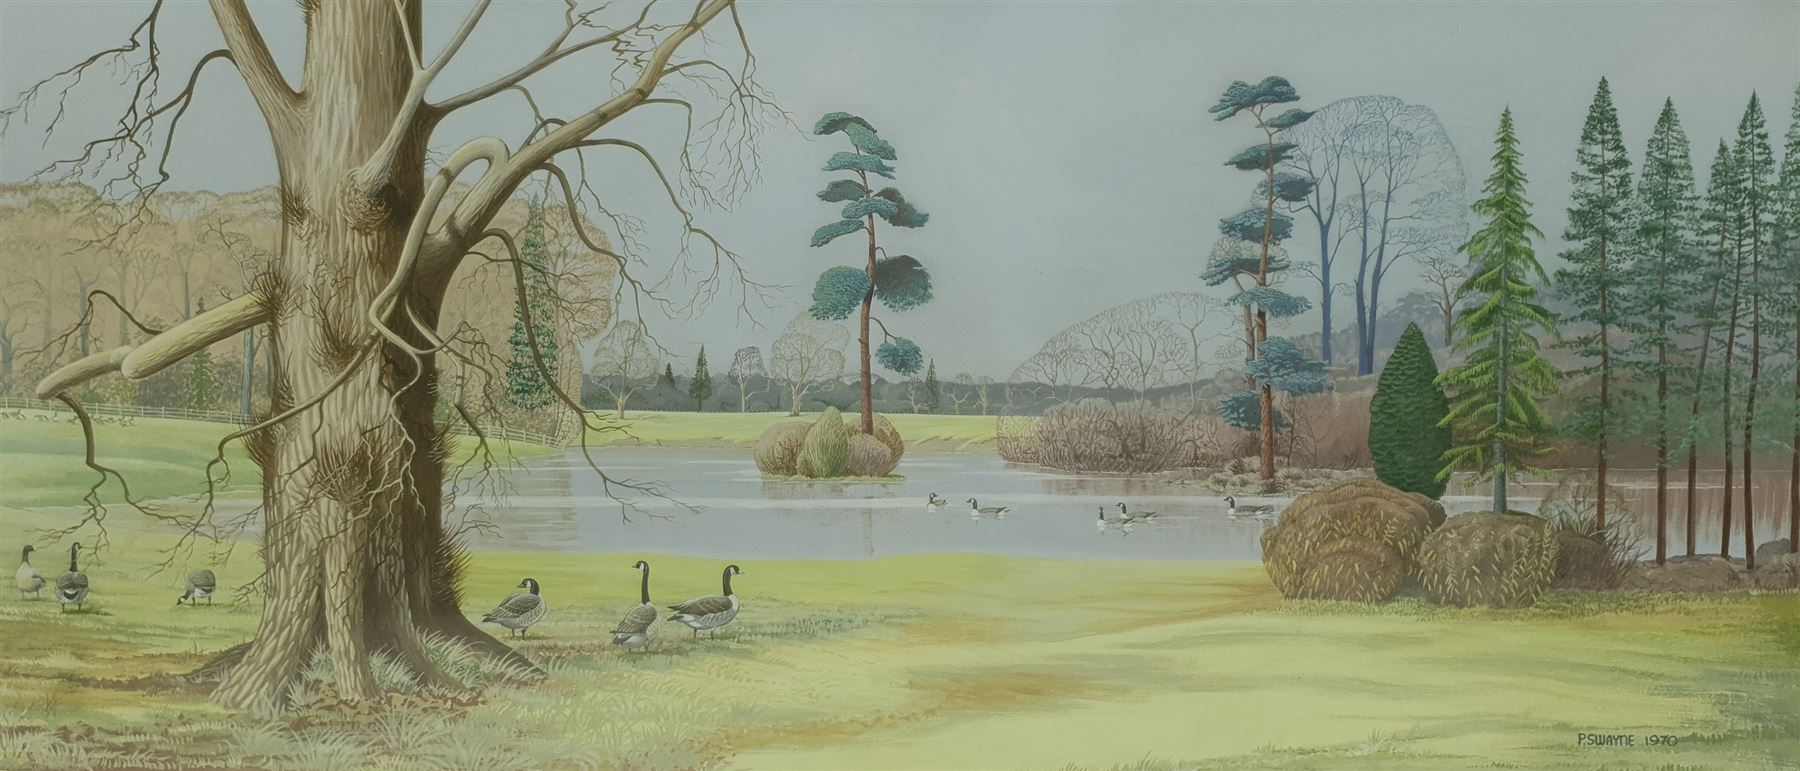 P Swayne (British 20th century): Geese in a River Landscape